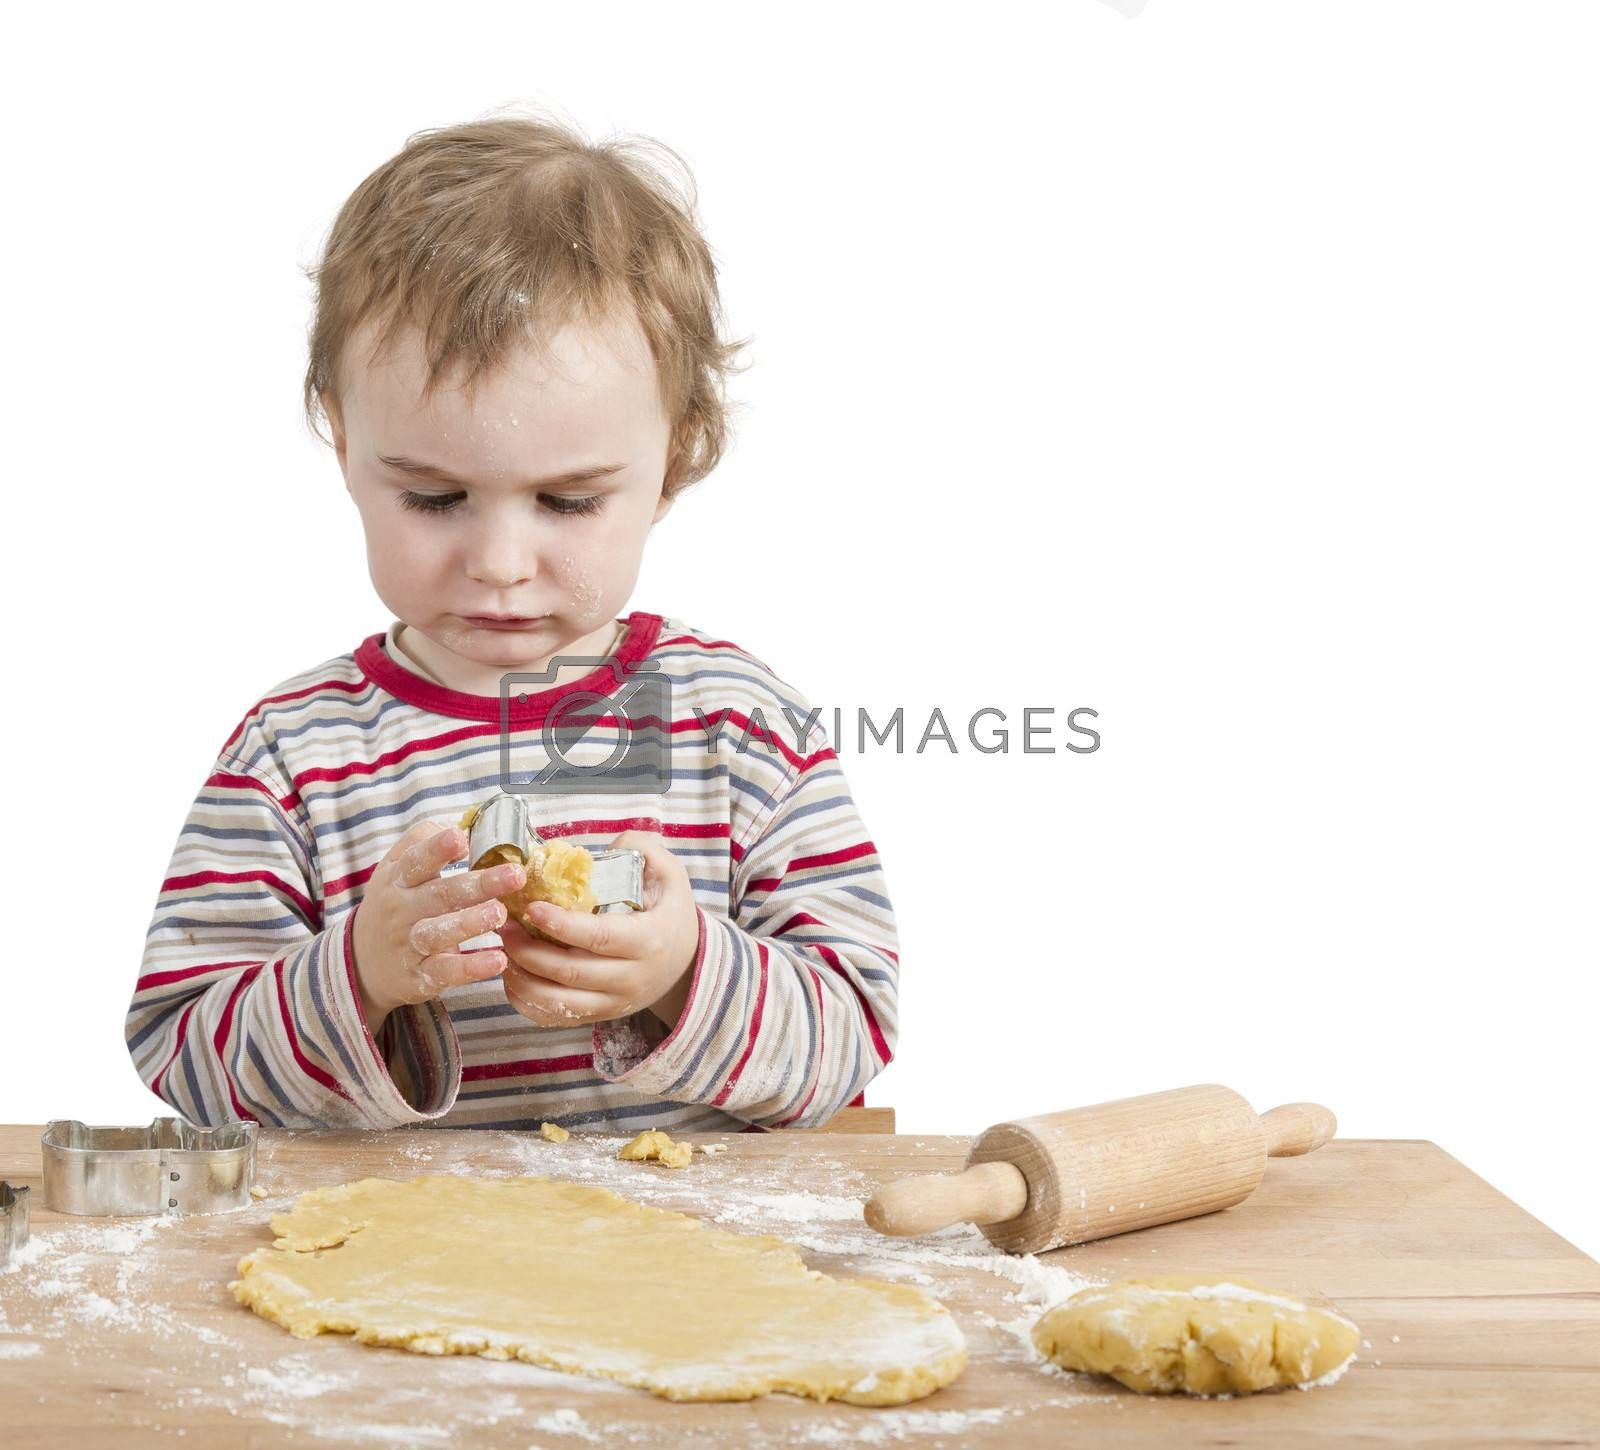 young child with rolling pin and dough. Isolated on white background